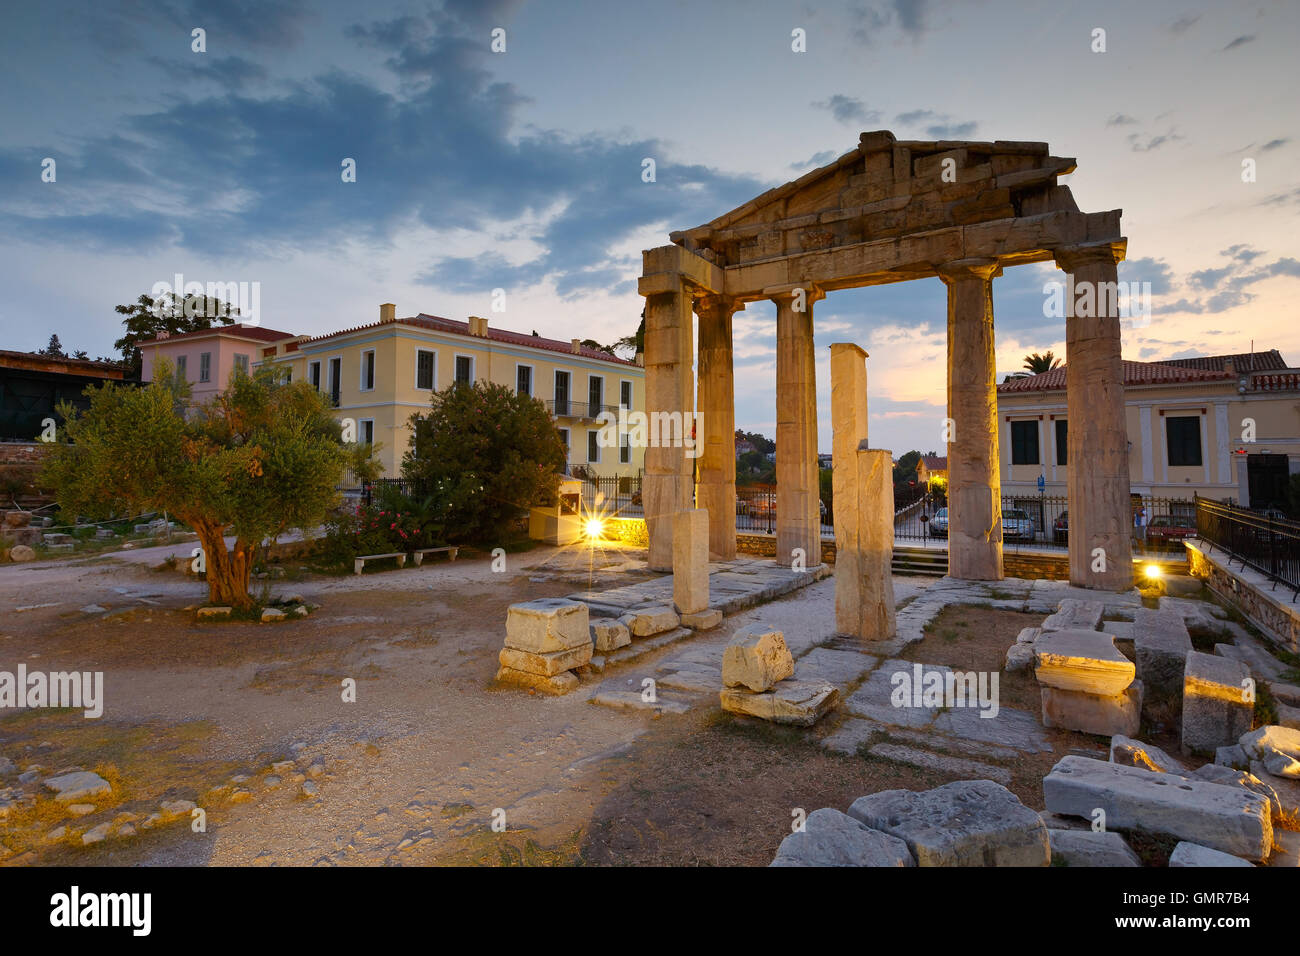 Remains of the Gate of Athena Archegetis and Roman Agora in Athens, Greece. - Stock Image